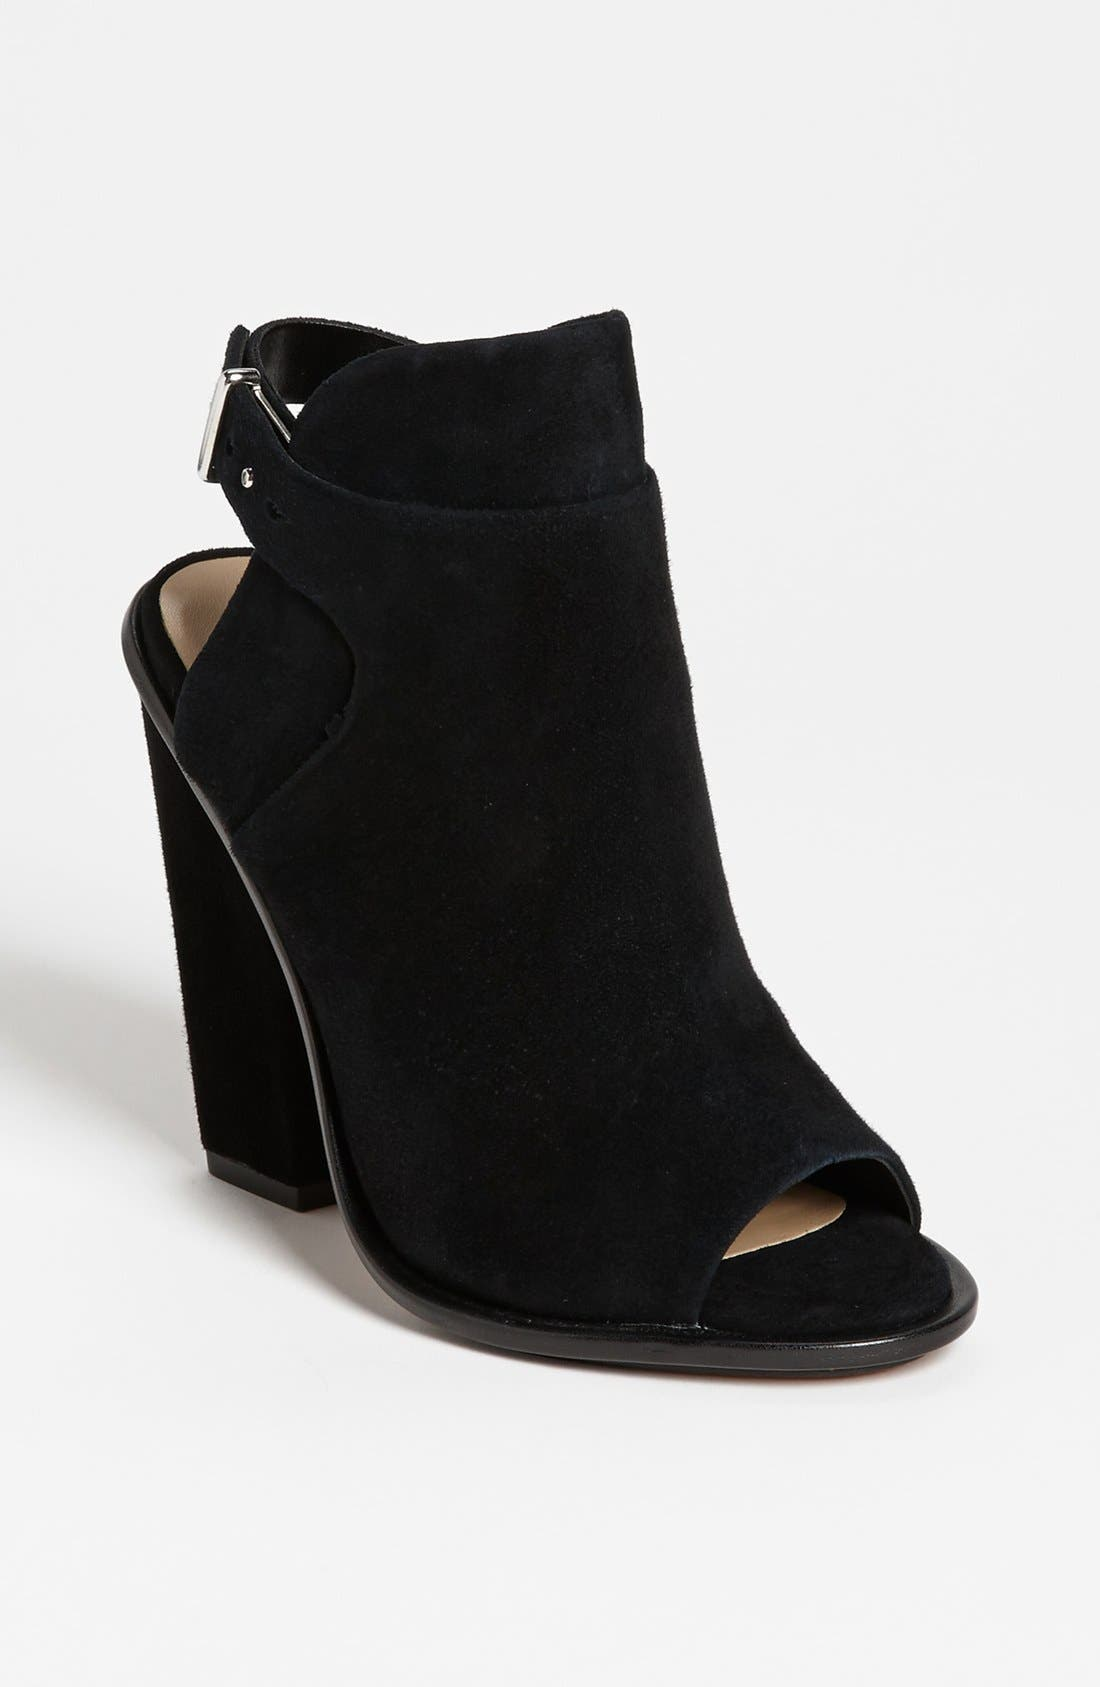 Alternate Image 1 Selected - Dolce Vita 'Niven' Bootie